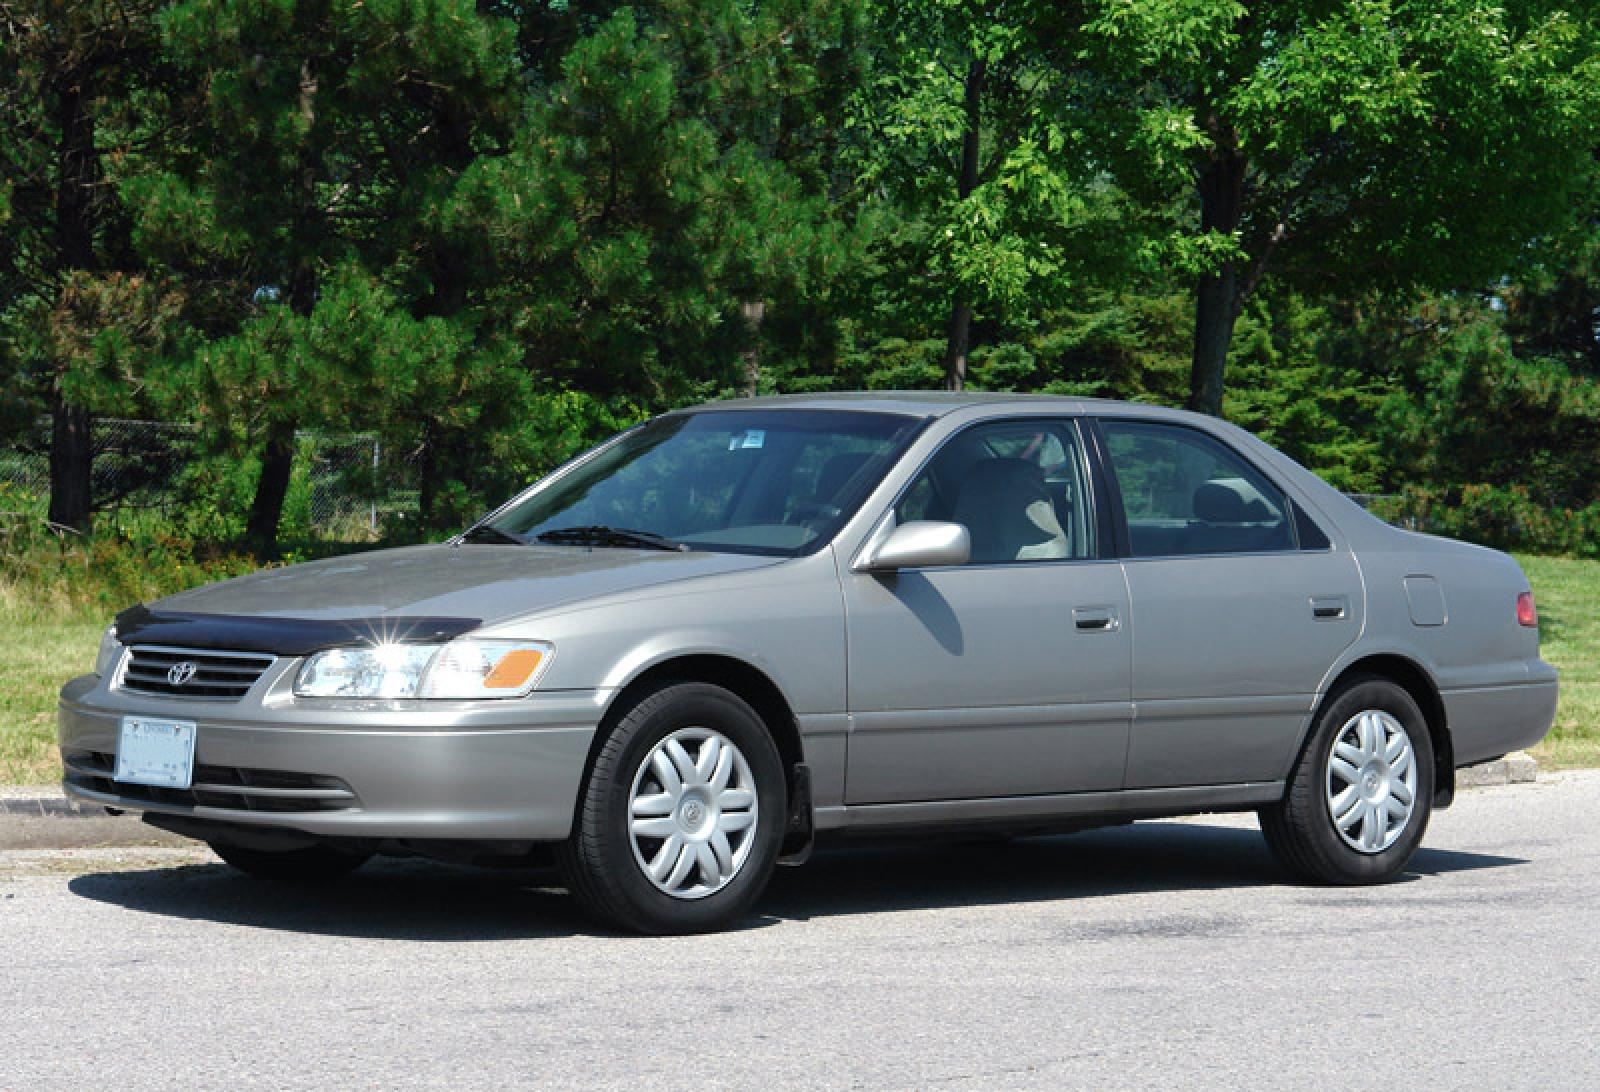 2001 toyota camry - information and photos